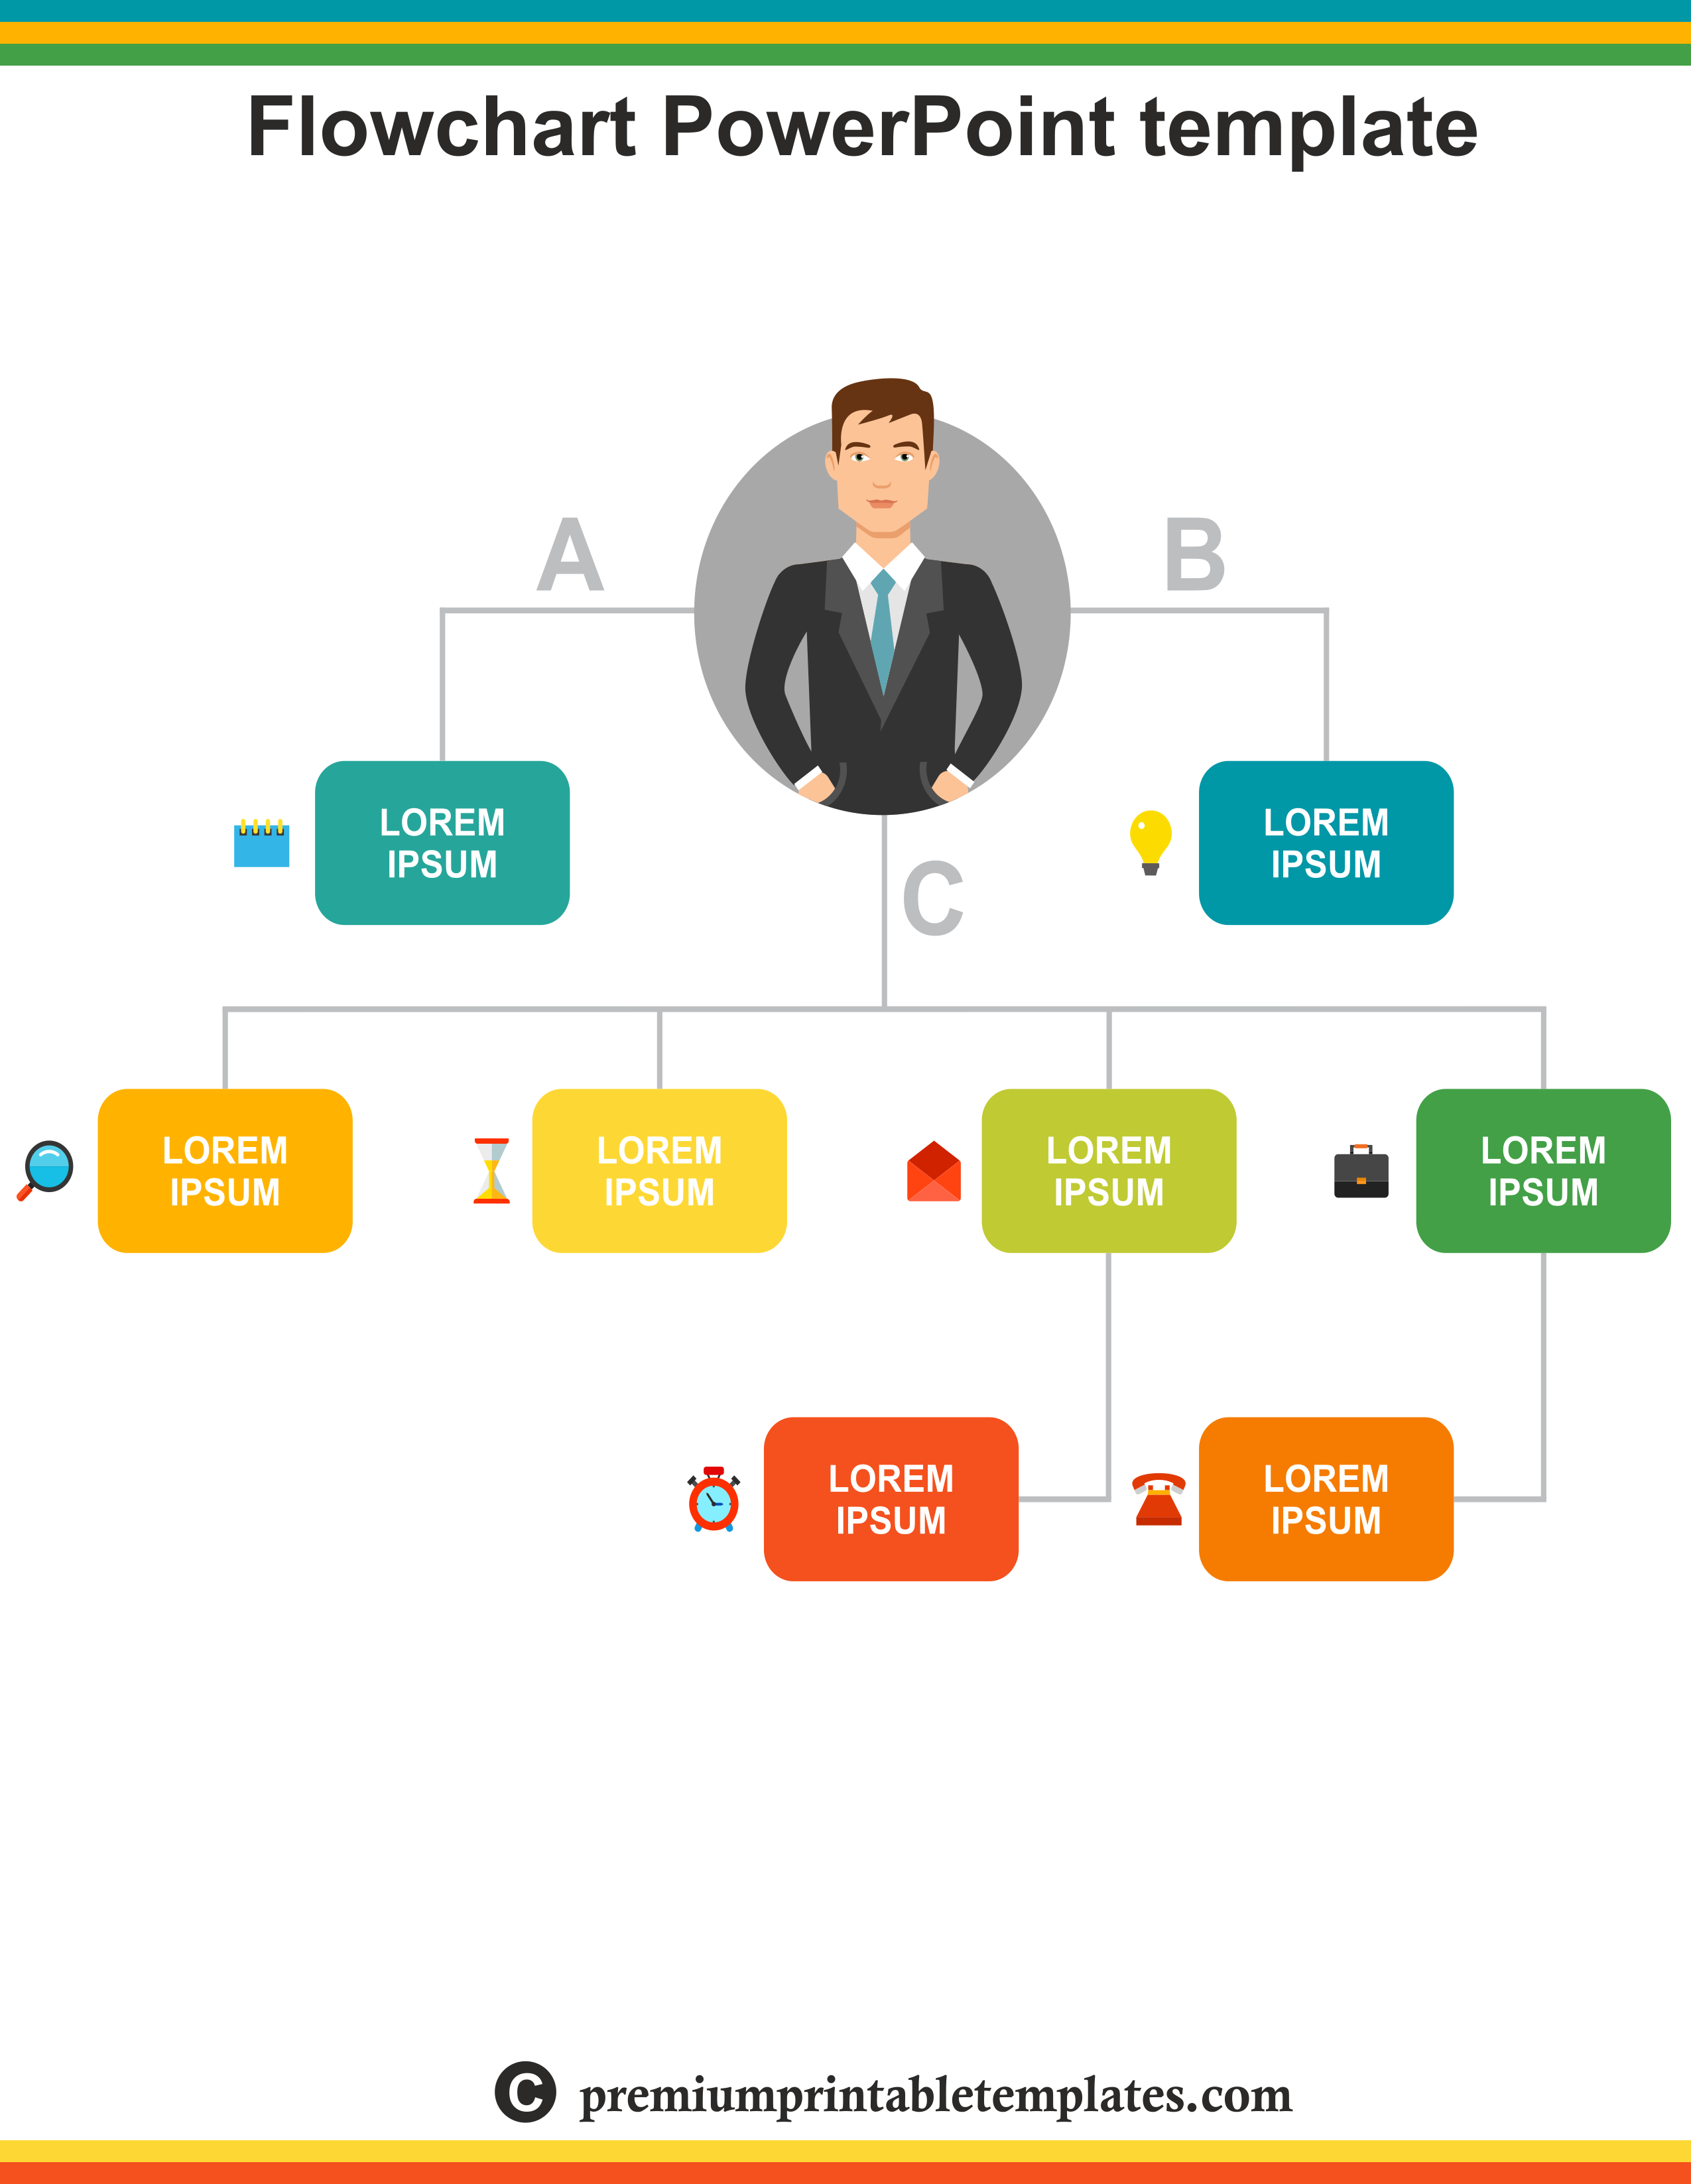 Flow Chart Powerpoint Templates The Following Sample Flowcharts